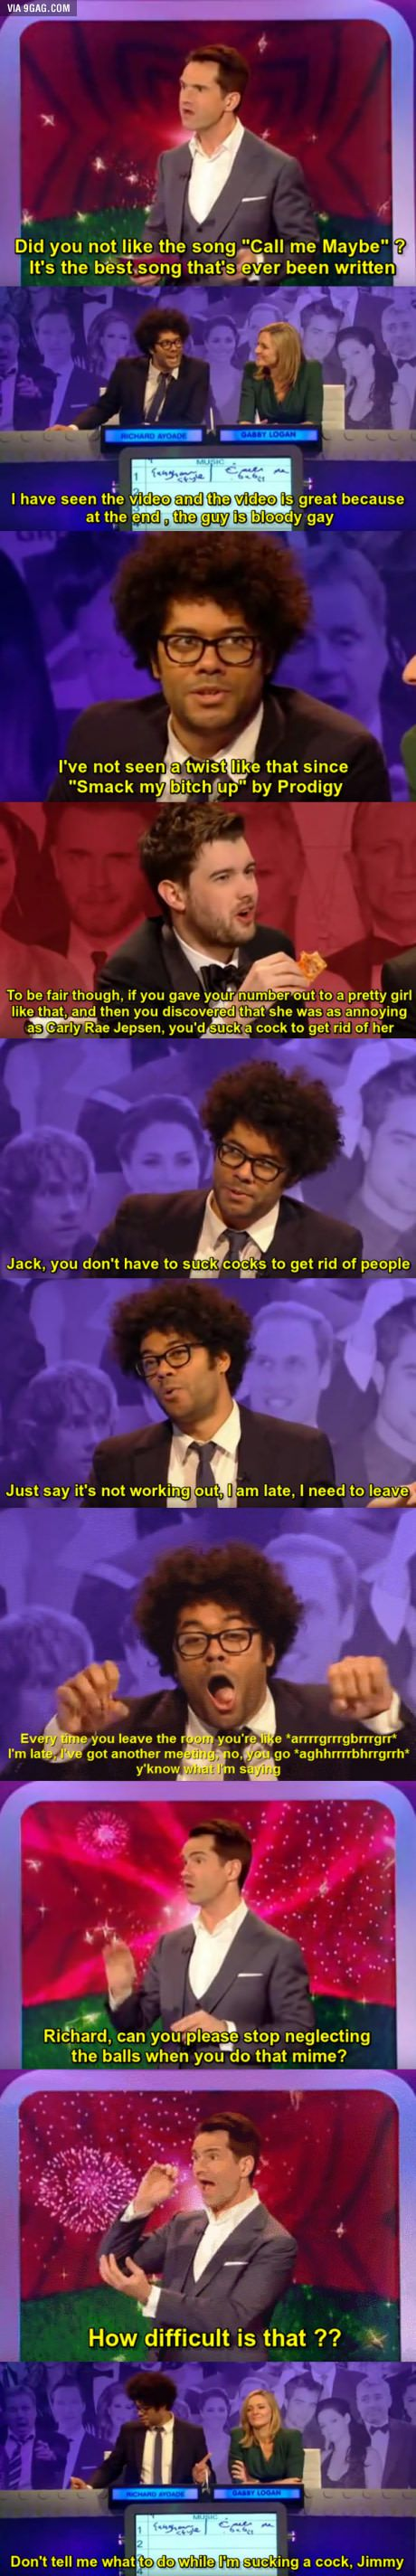 Richard Ayoade giving tips on how to say goodbye | The Big Fat Quiz of the Year